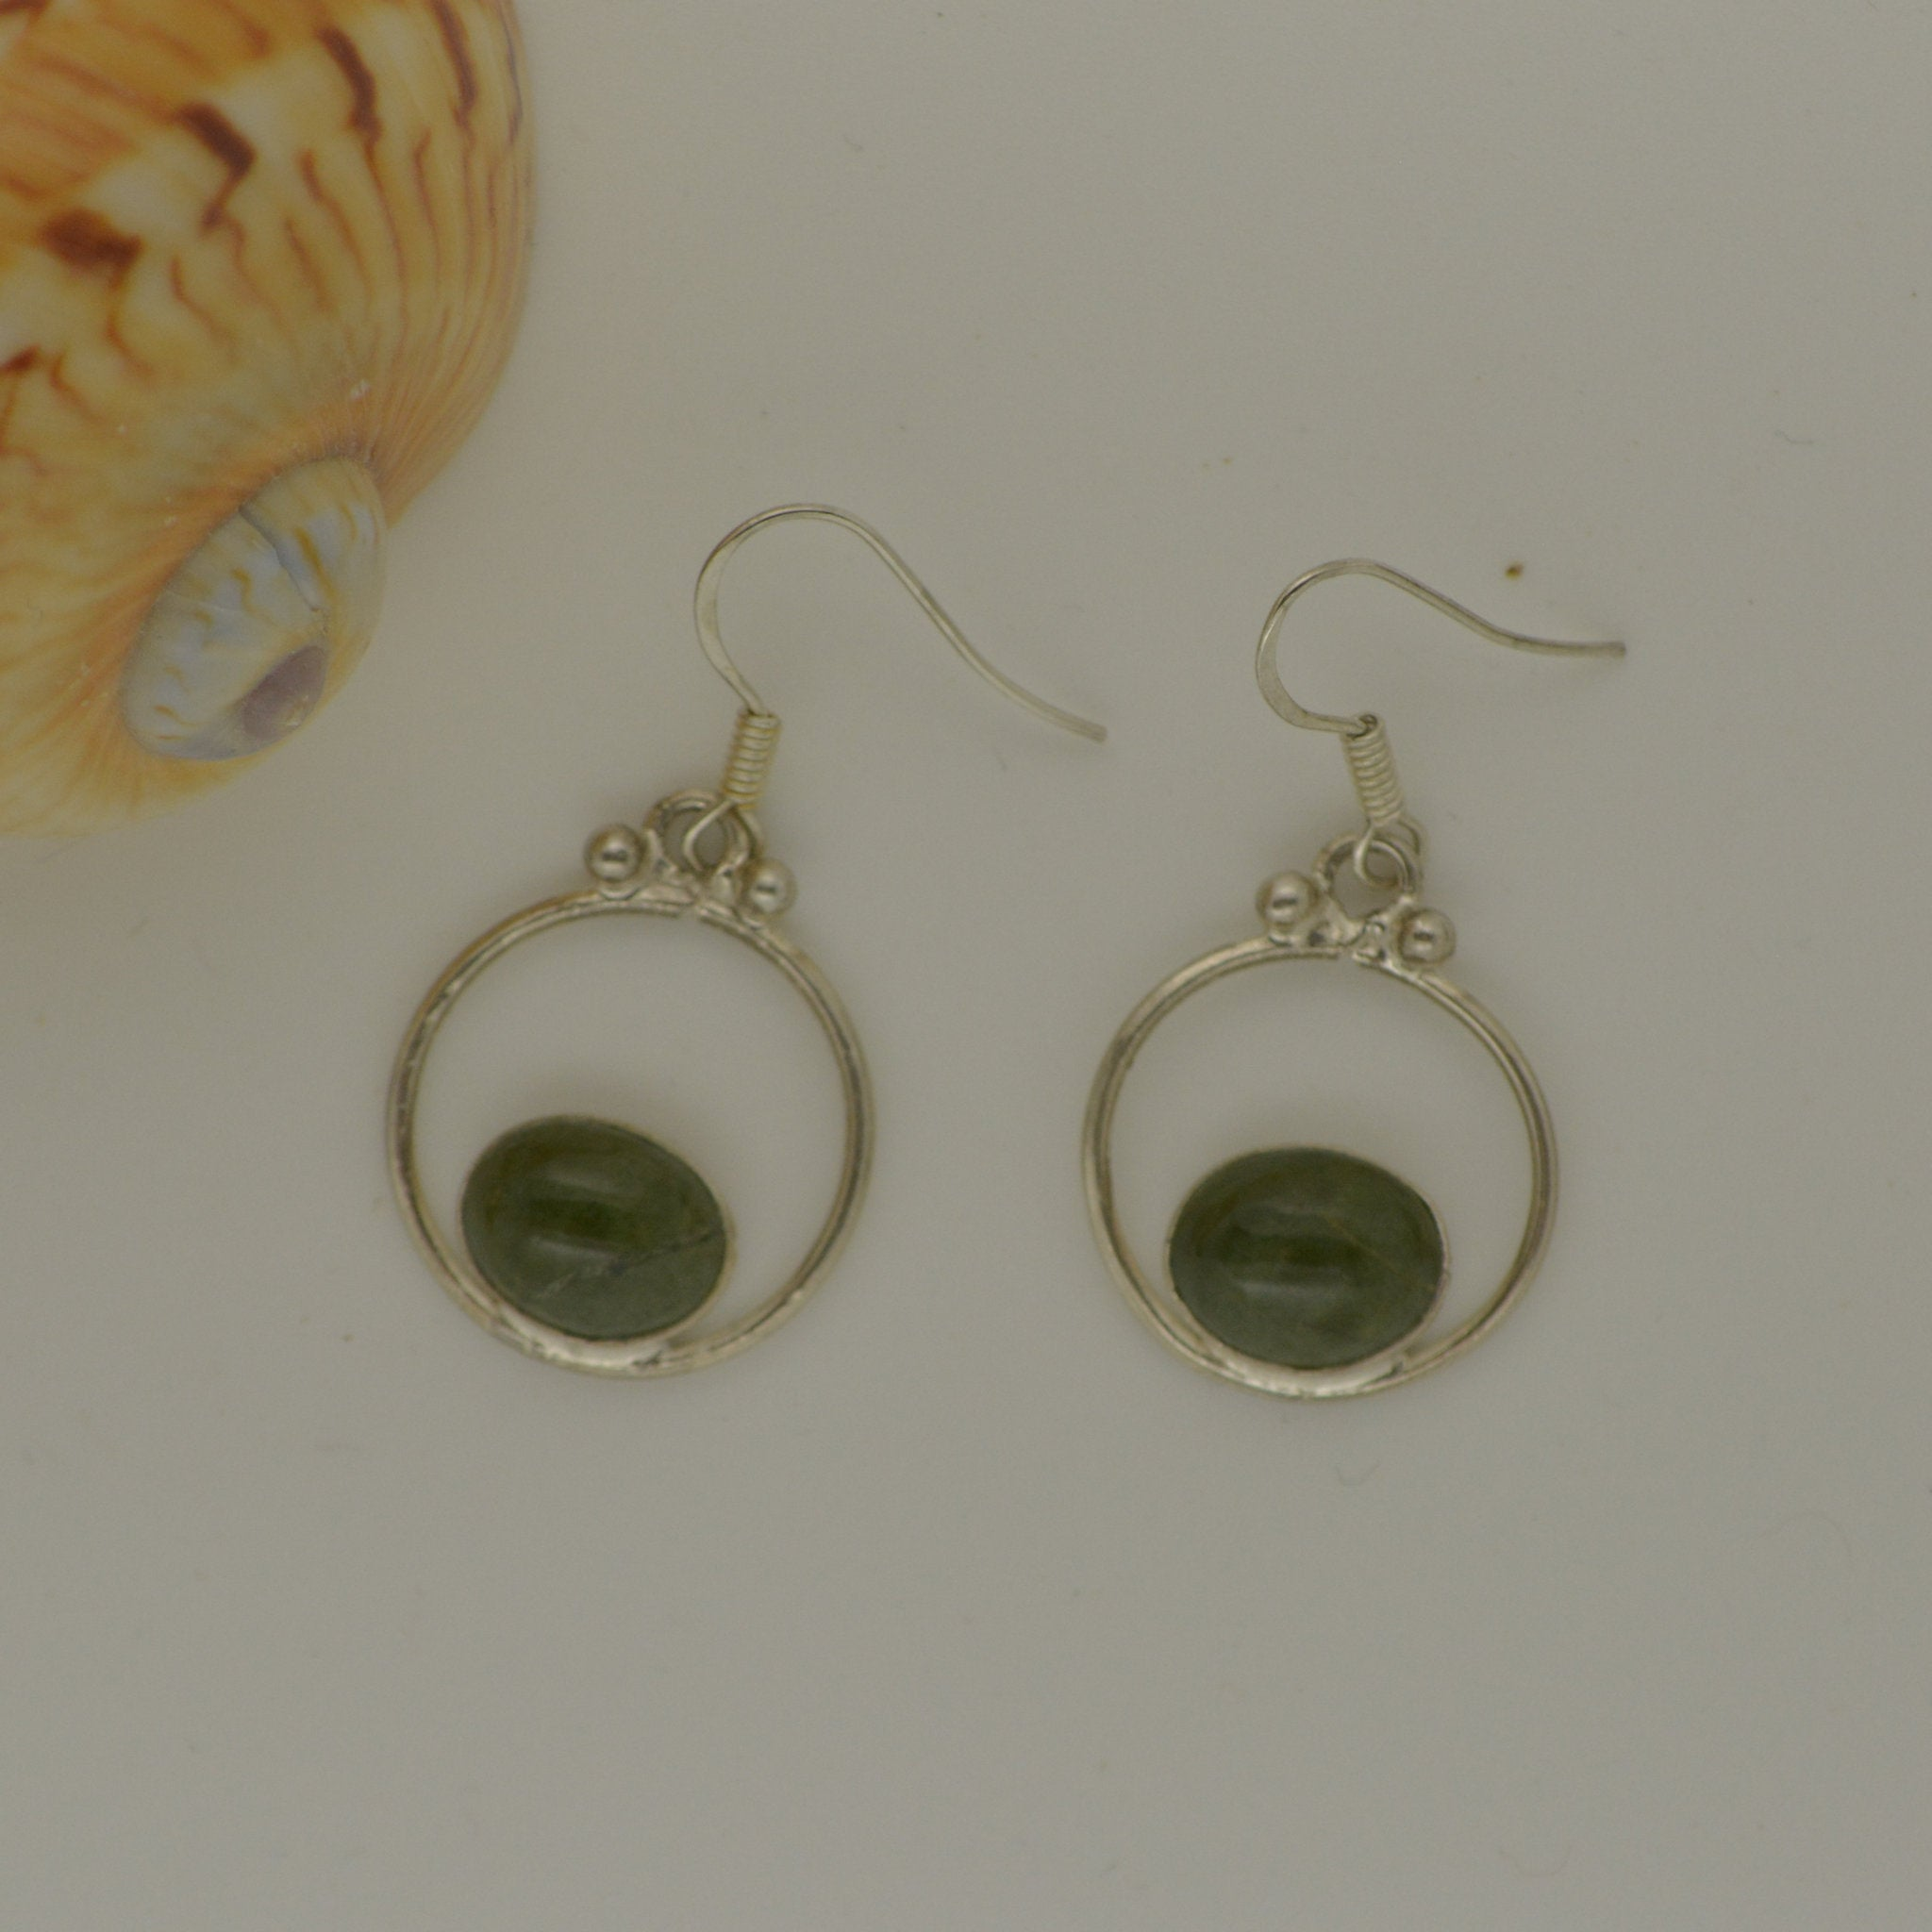 Tortola Green Jasper Earrings 4.2g